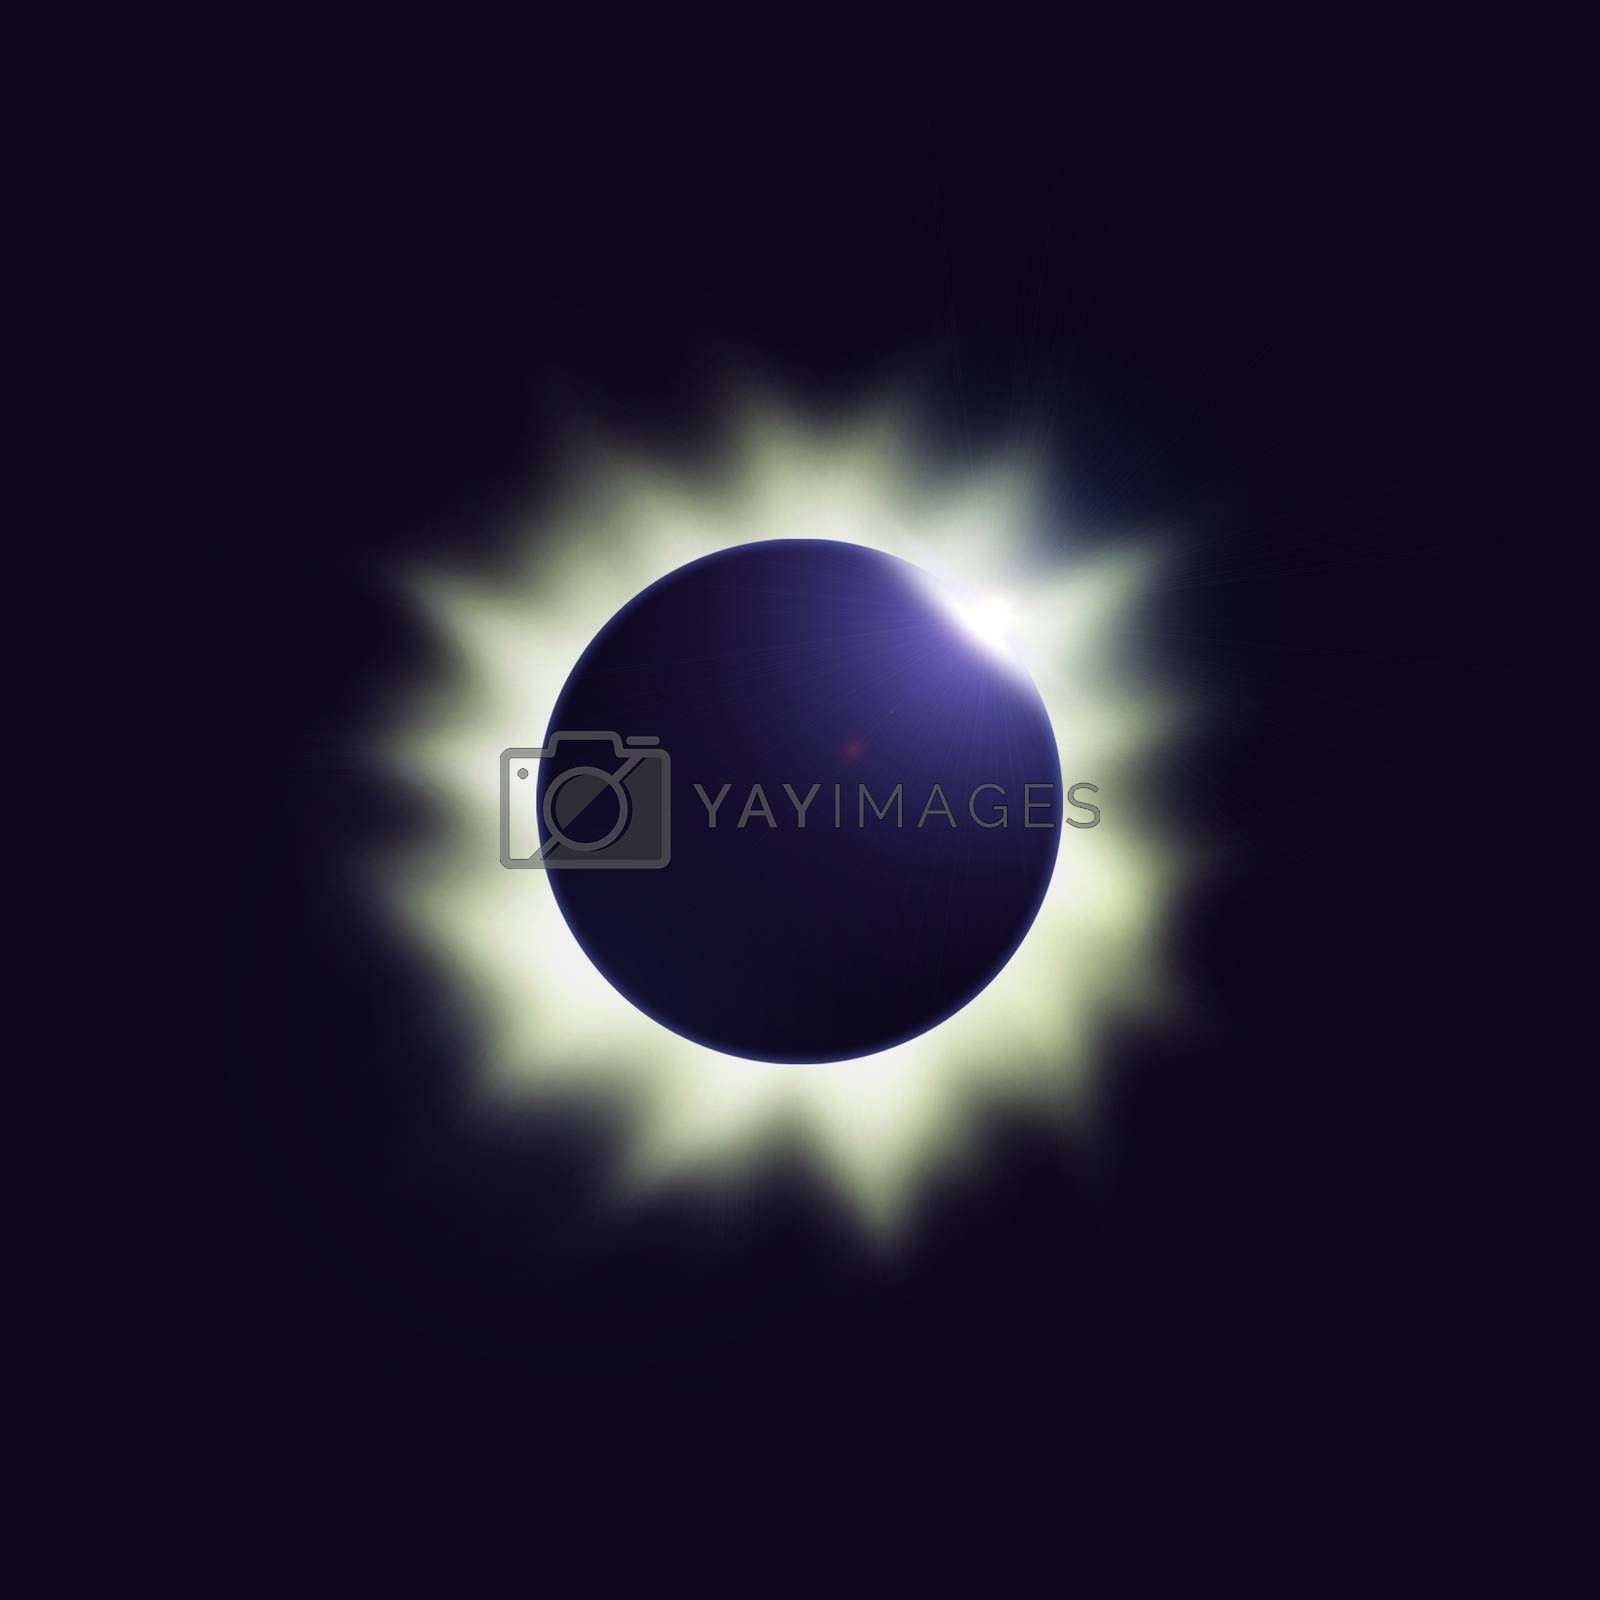 Total eclipse of the sun with heat corona in deep blue space. Digital illustration